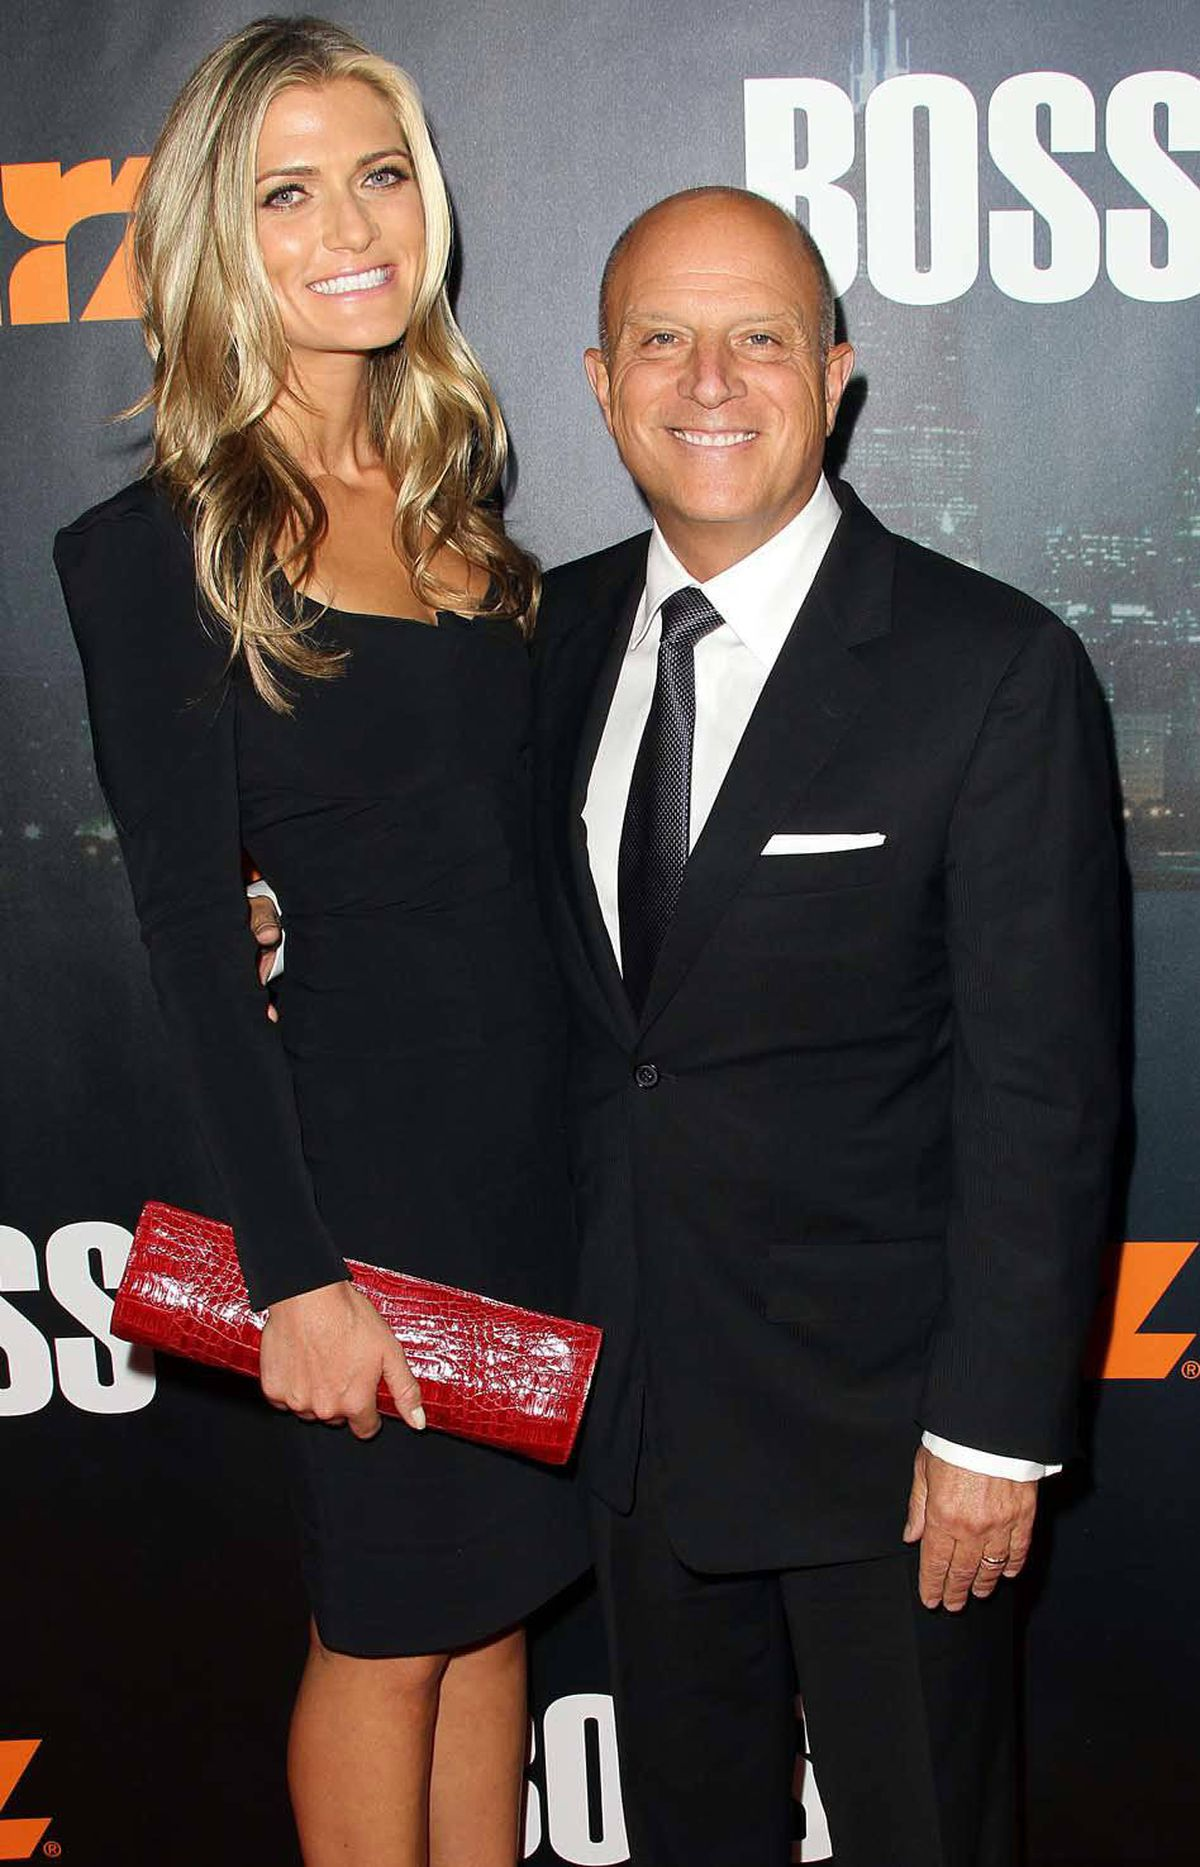 """""""Occupy this, losers,"""" Chris Albrecht, the diminuitive president/CEO of a major Hollywood production company, says while attending a premiere with his taller, younger, way better looking wife in Los Angeles last week."""